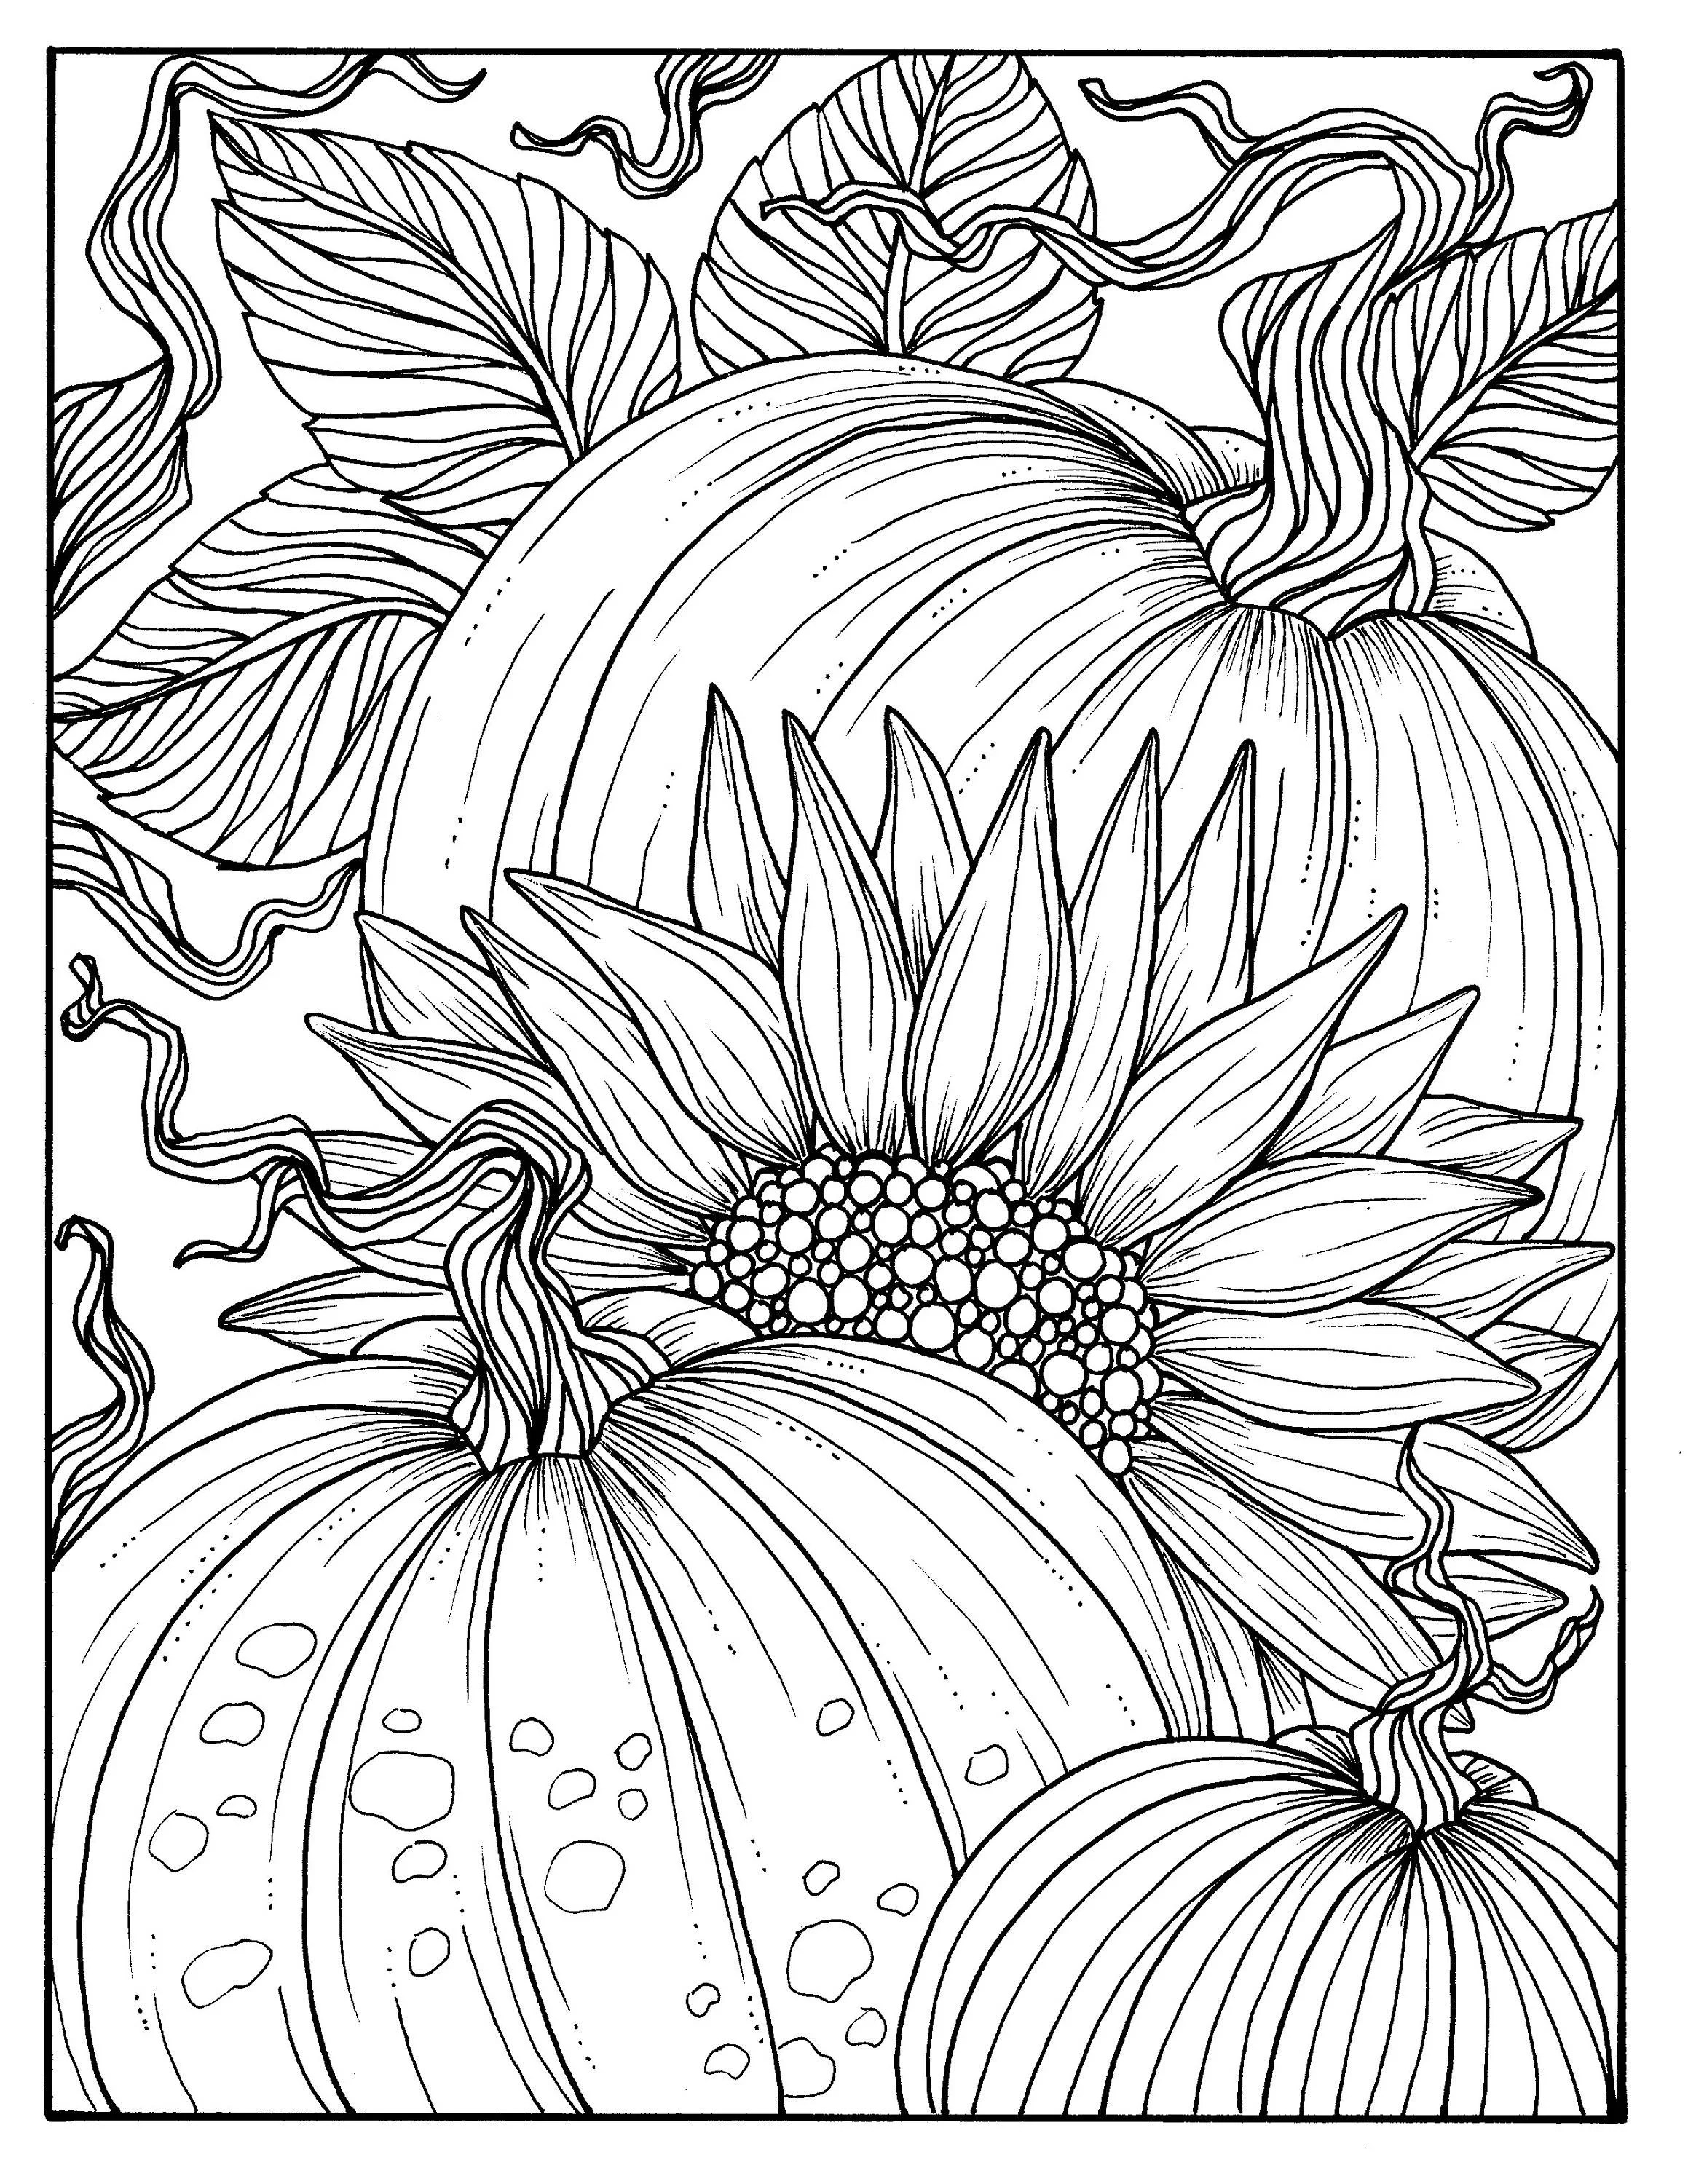 5 Pages Fabulous Fall Digital Downloads To Color Punpkins